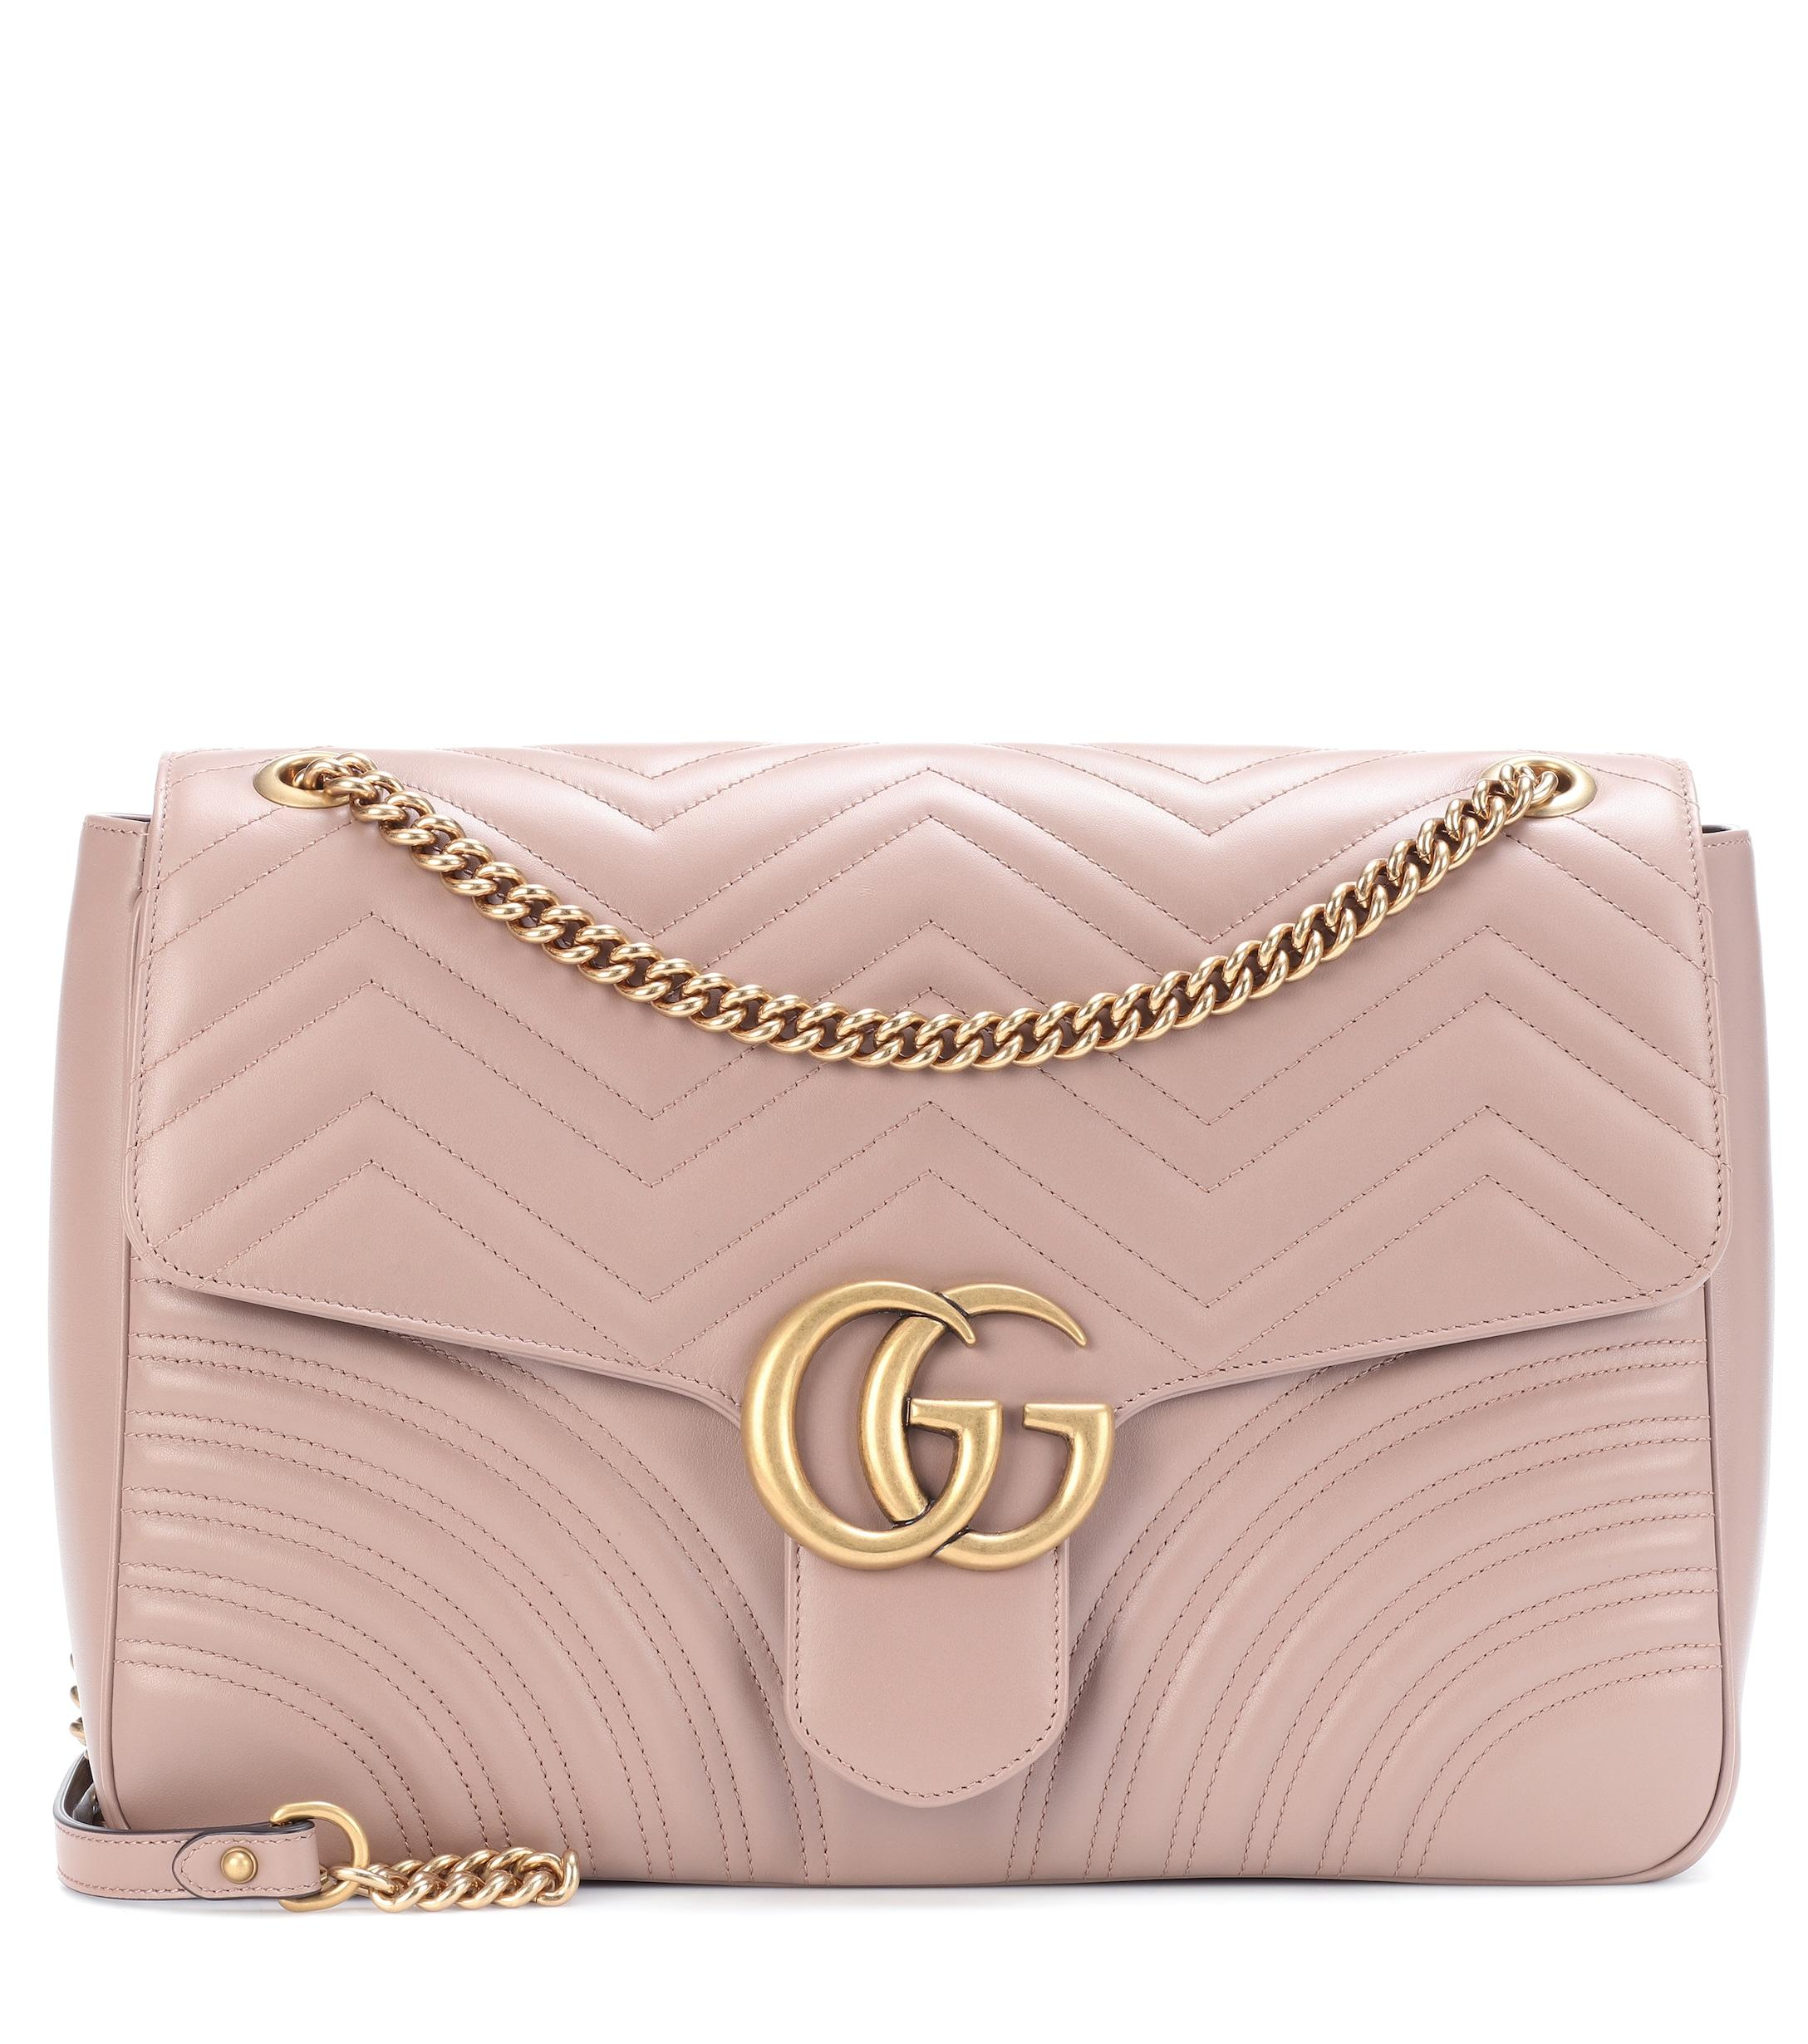 912c9bfb890d0 Lyst - Gucci GG Marmont Large Shoulder Bag in Pink